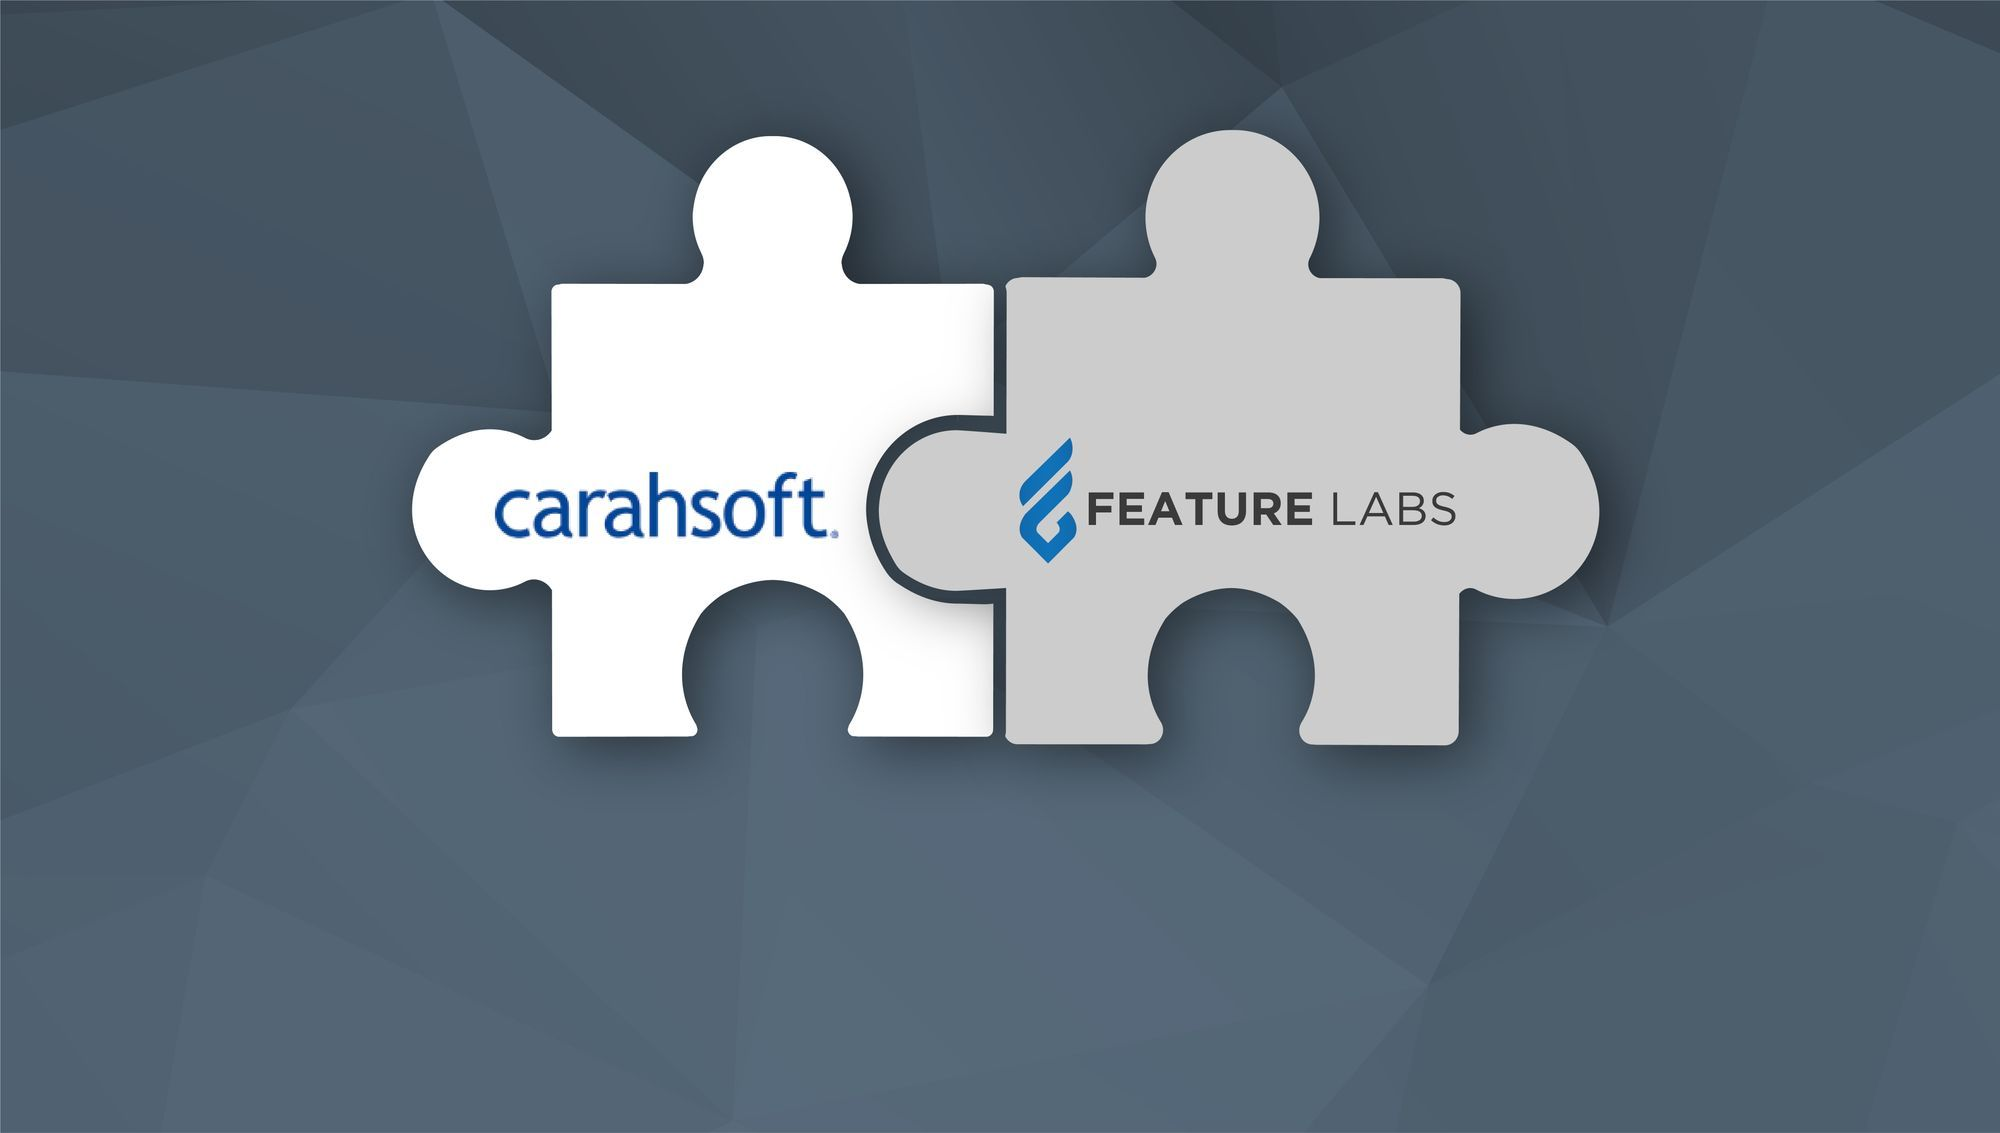 Feature Labs, Carahsoft join forces to provide public sector with automated feature engineering